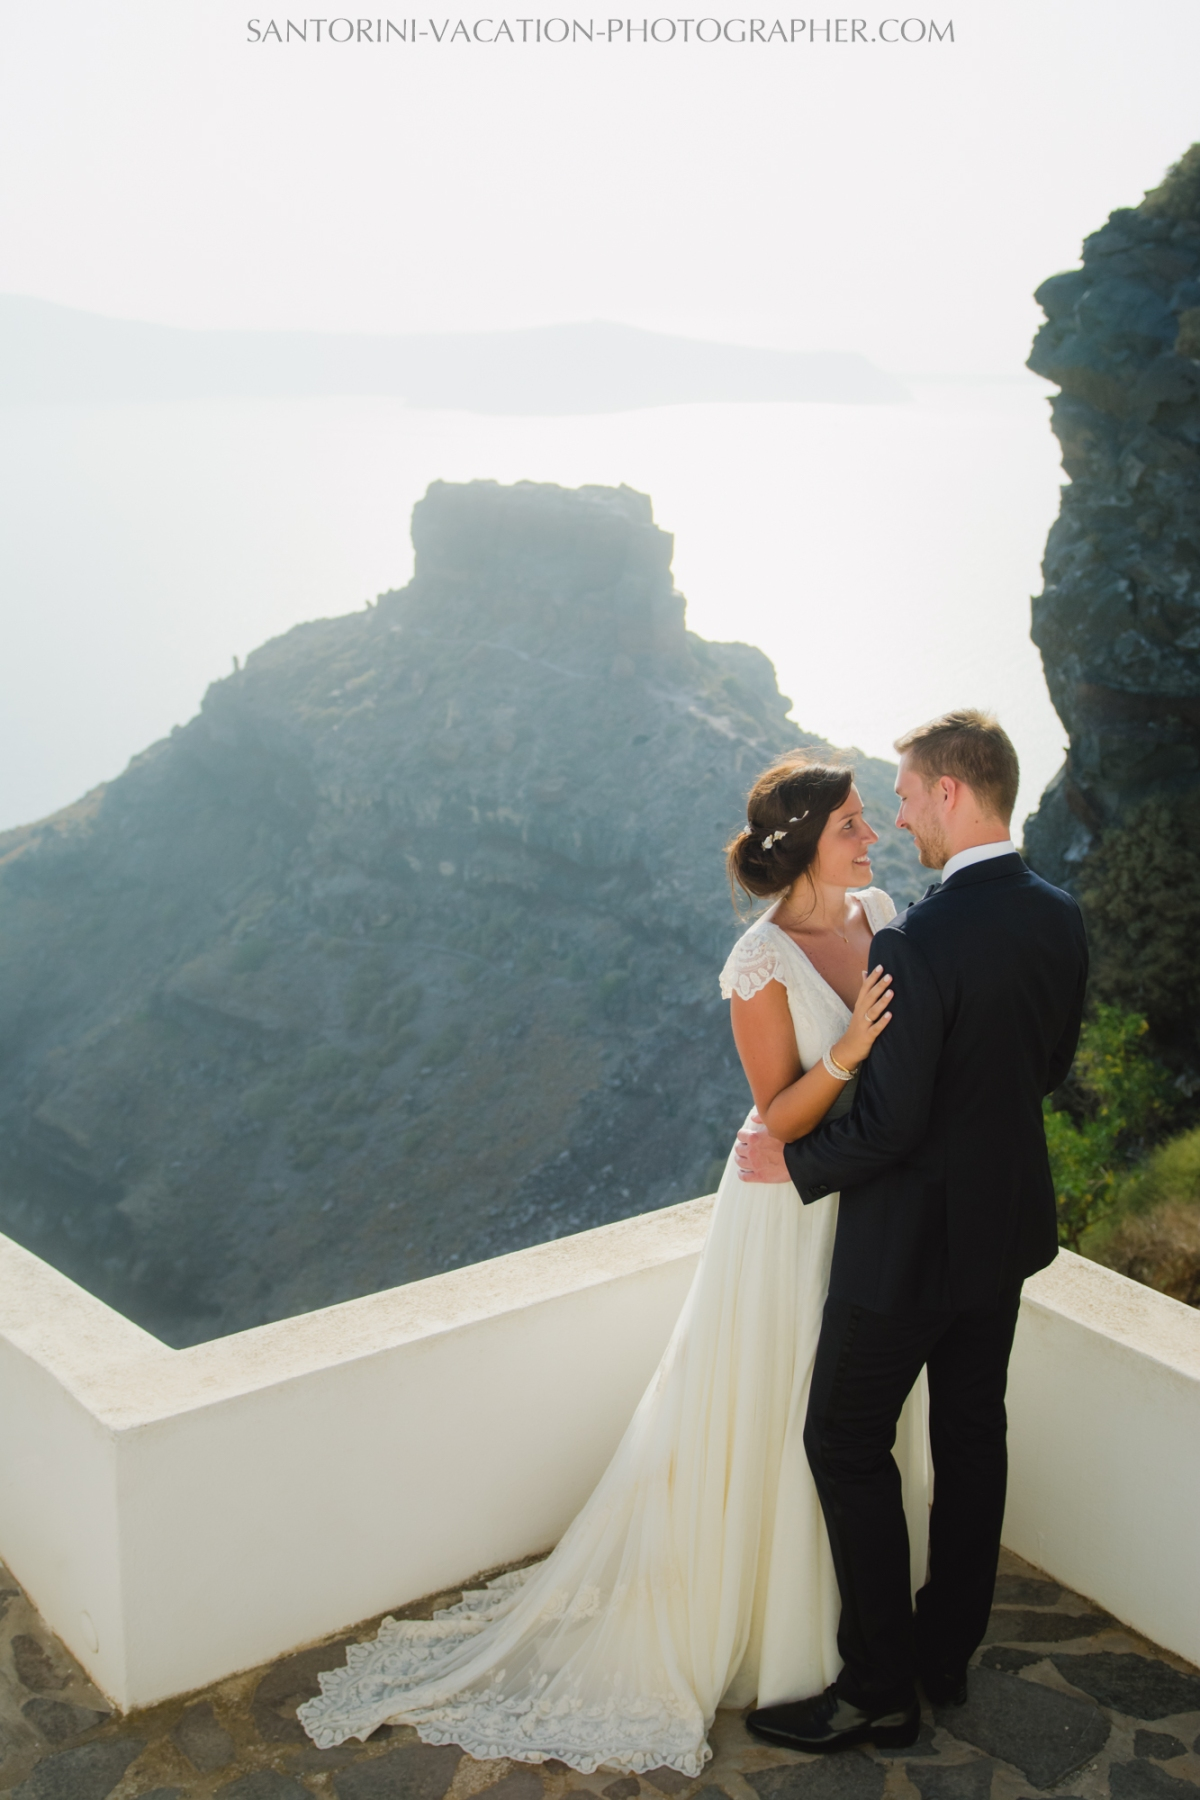 photo-session-santorini-caldera-honeymoon-wedding-dress